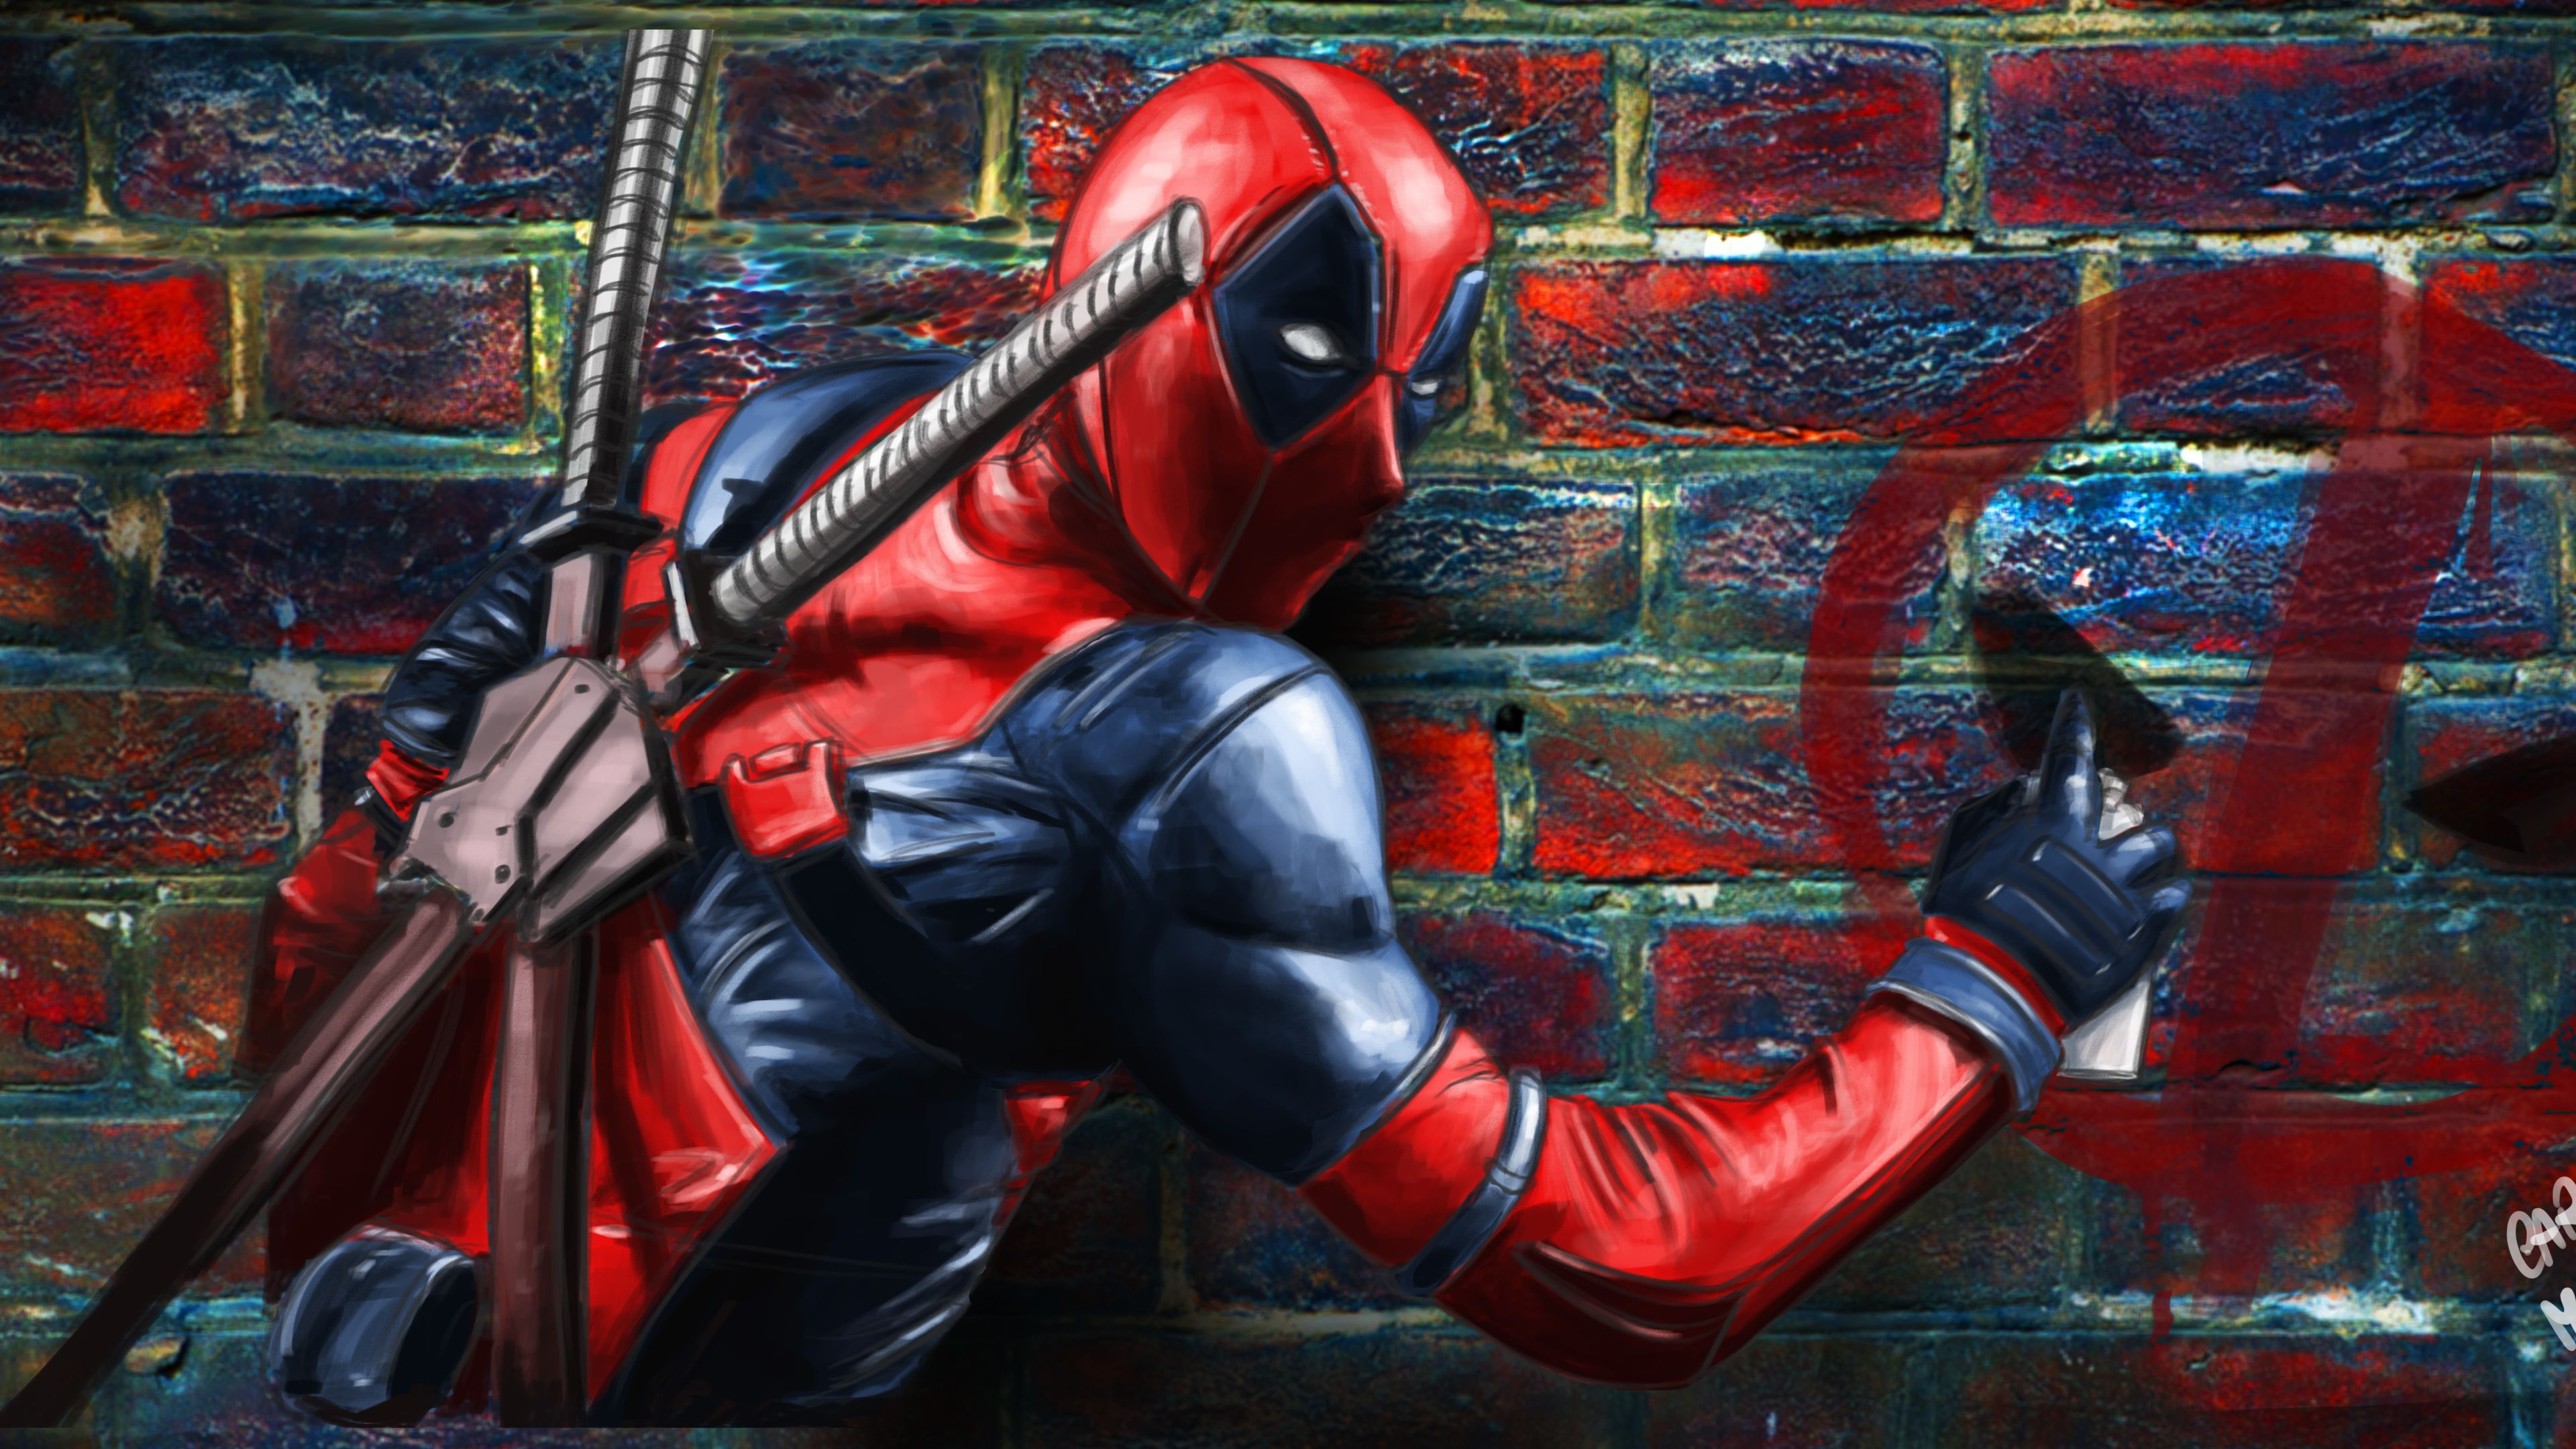 Deadpool Painting On The Wall Superheroes Wallpapers Hd Wallpapers Funny Wallpapers Digital Art Wallpa Deadpool Painting Funny Wallpapers Deadpool Wallpaper